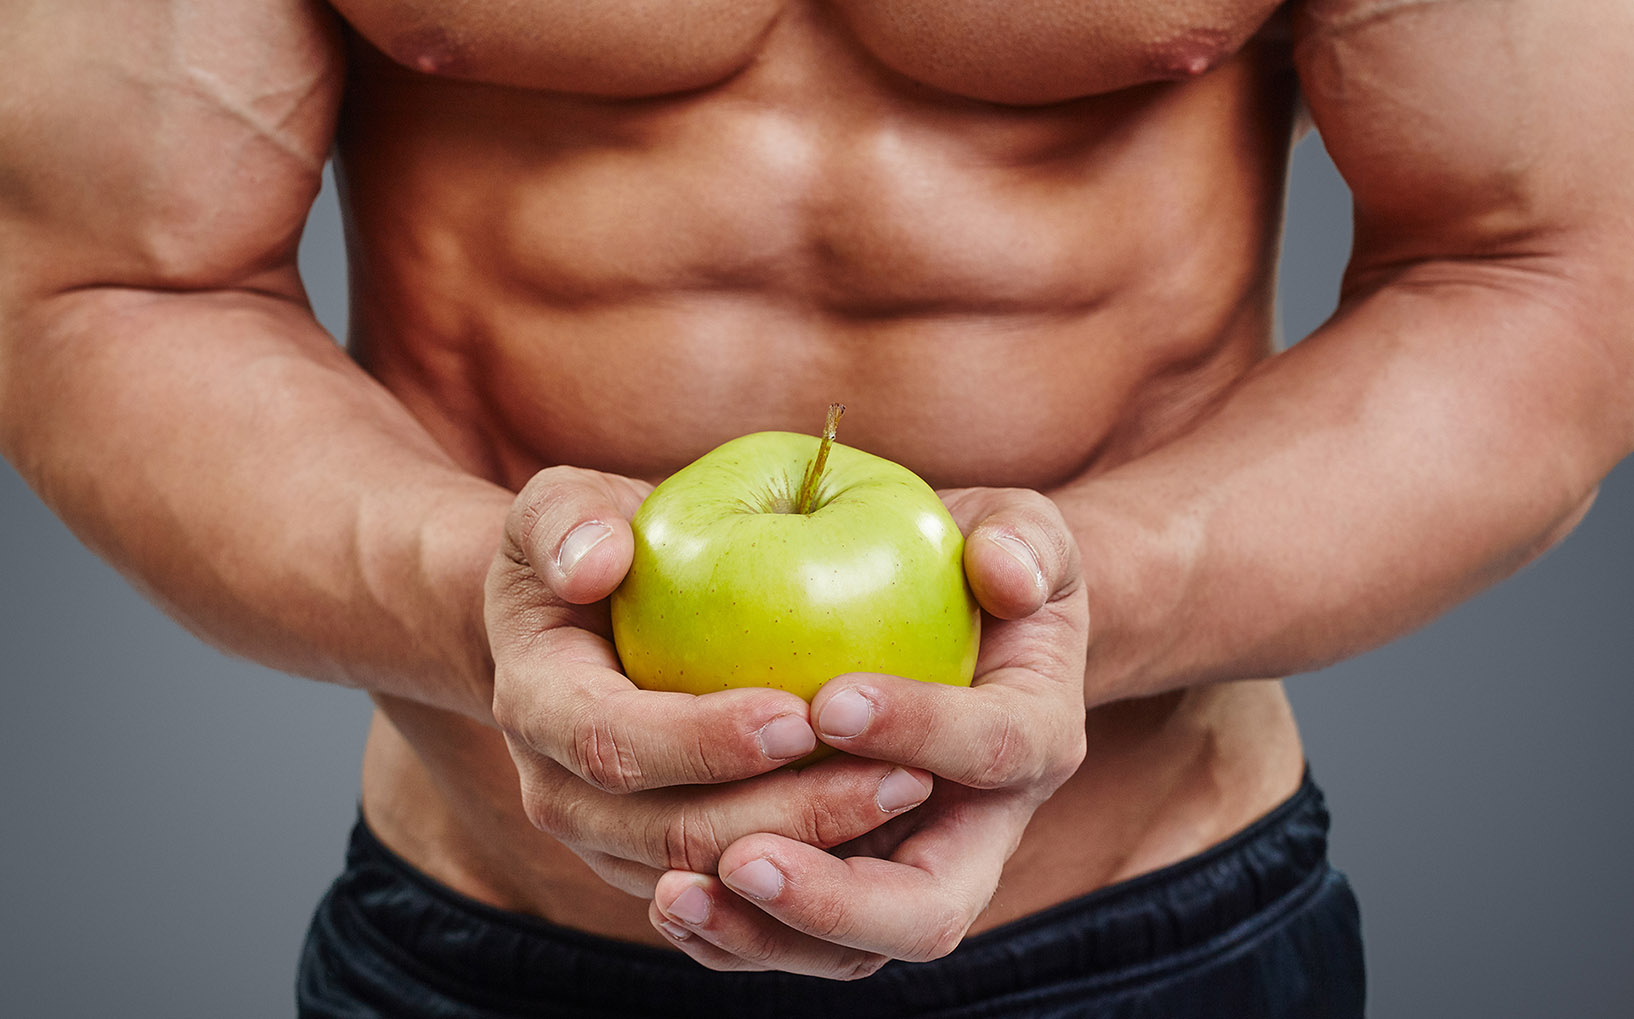 Fruit that Boost Testosterone Levels and Prevent Diseases?? Sign Us Up! Daddy Squared's Top 10 Healthiest Fruit